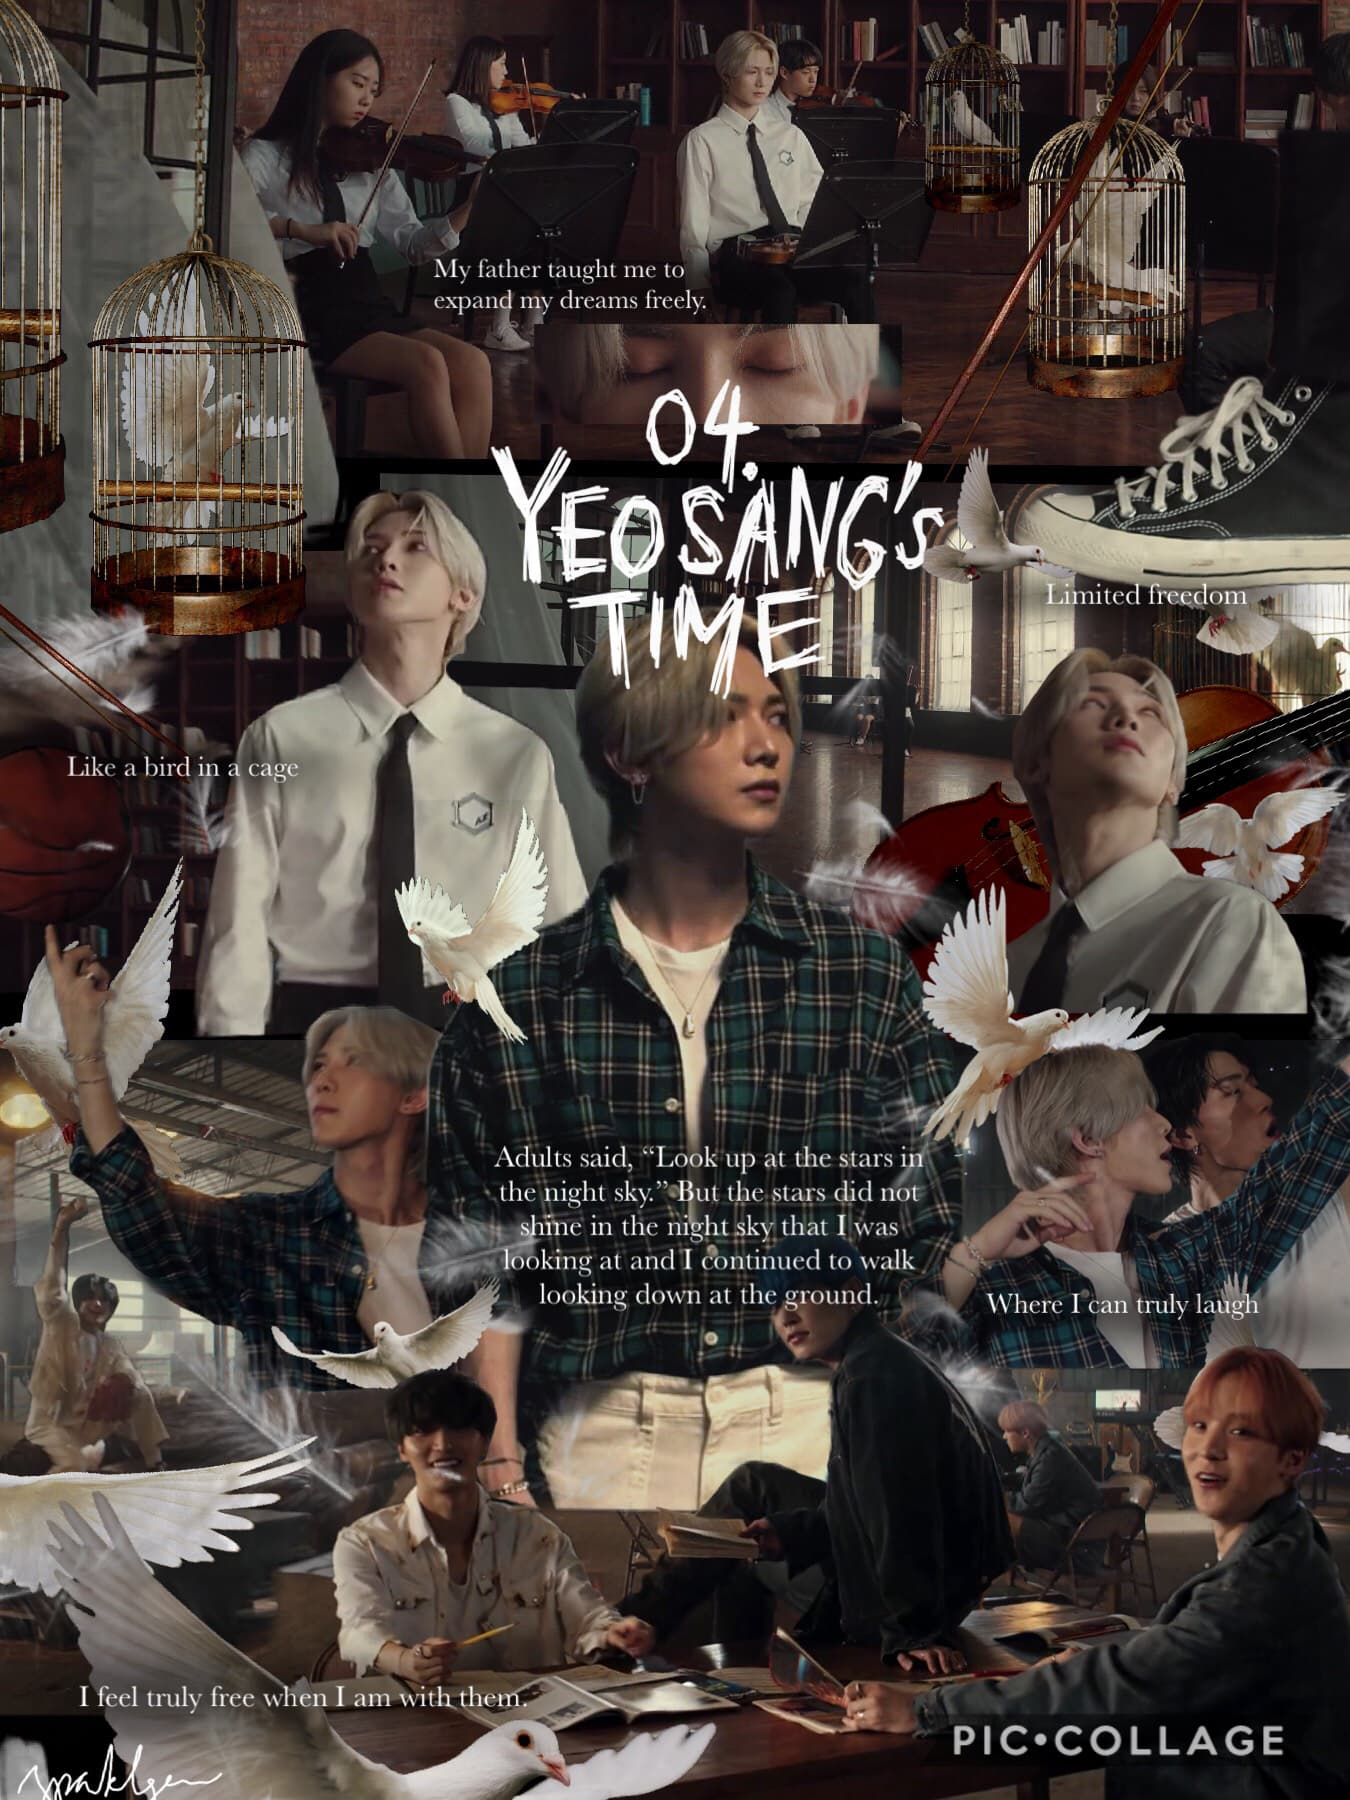 """[5/10] 04. """"Yeosang's Time""""  YS talks about """"time"""" & """"adults"""" so maybe he doesn't want to grow up (peter pan/lost boys reference) & give into society's standards of success/maturity (the violins) because it gives him limited freedom (birdcage)"""